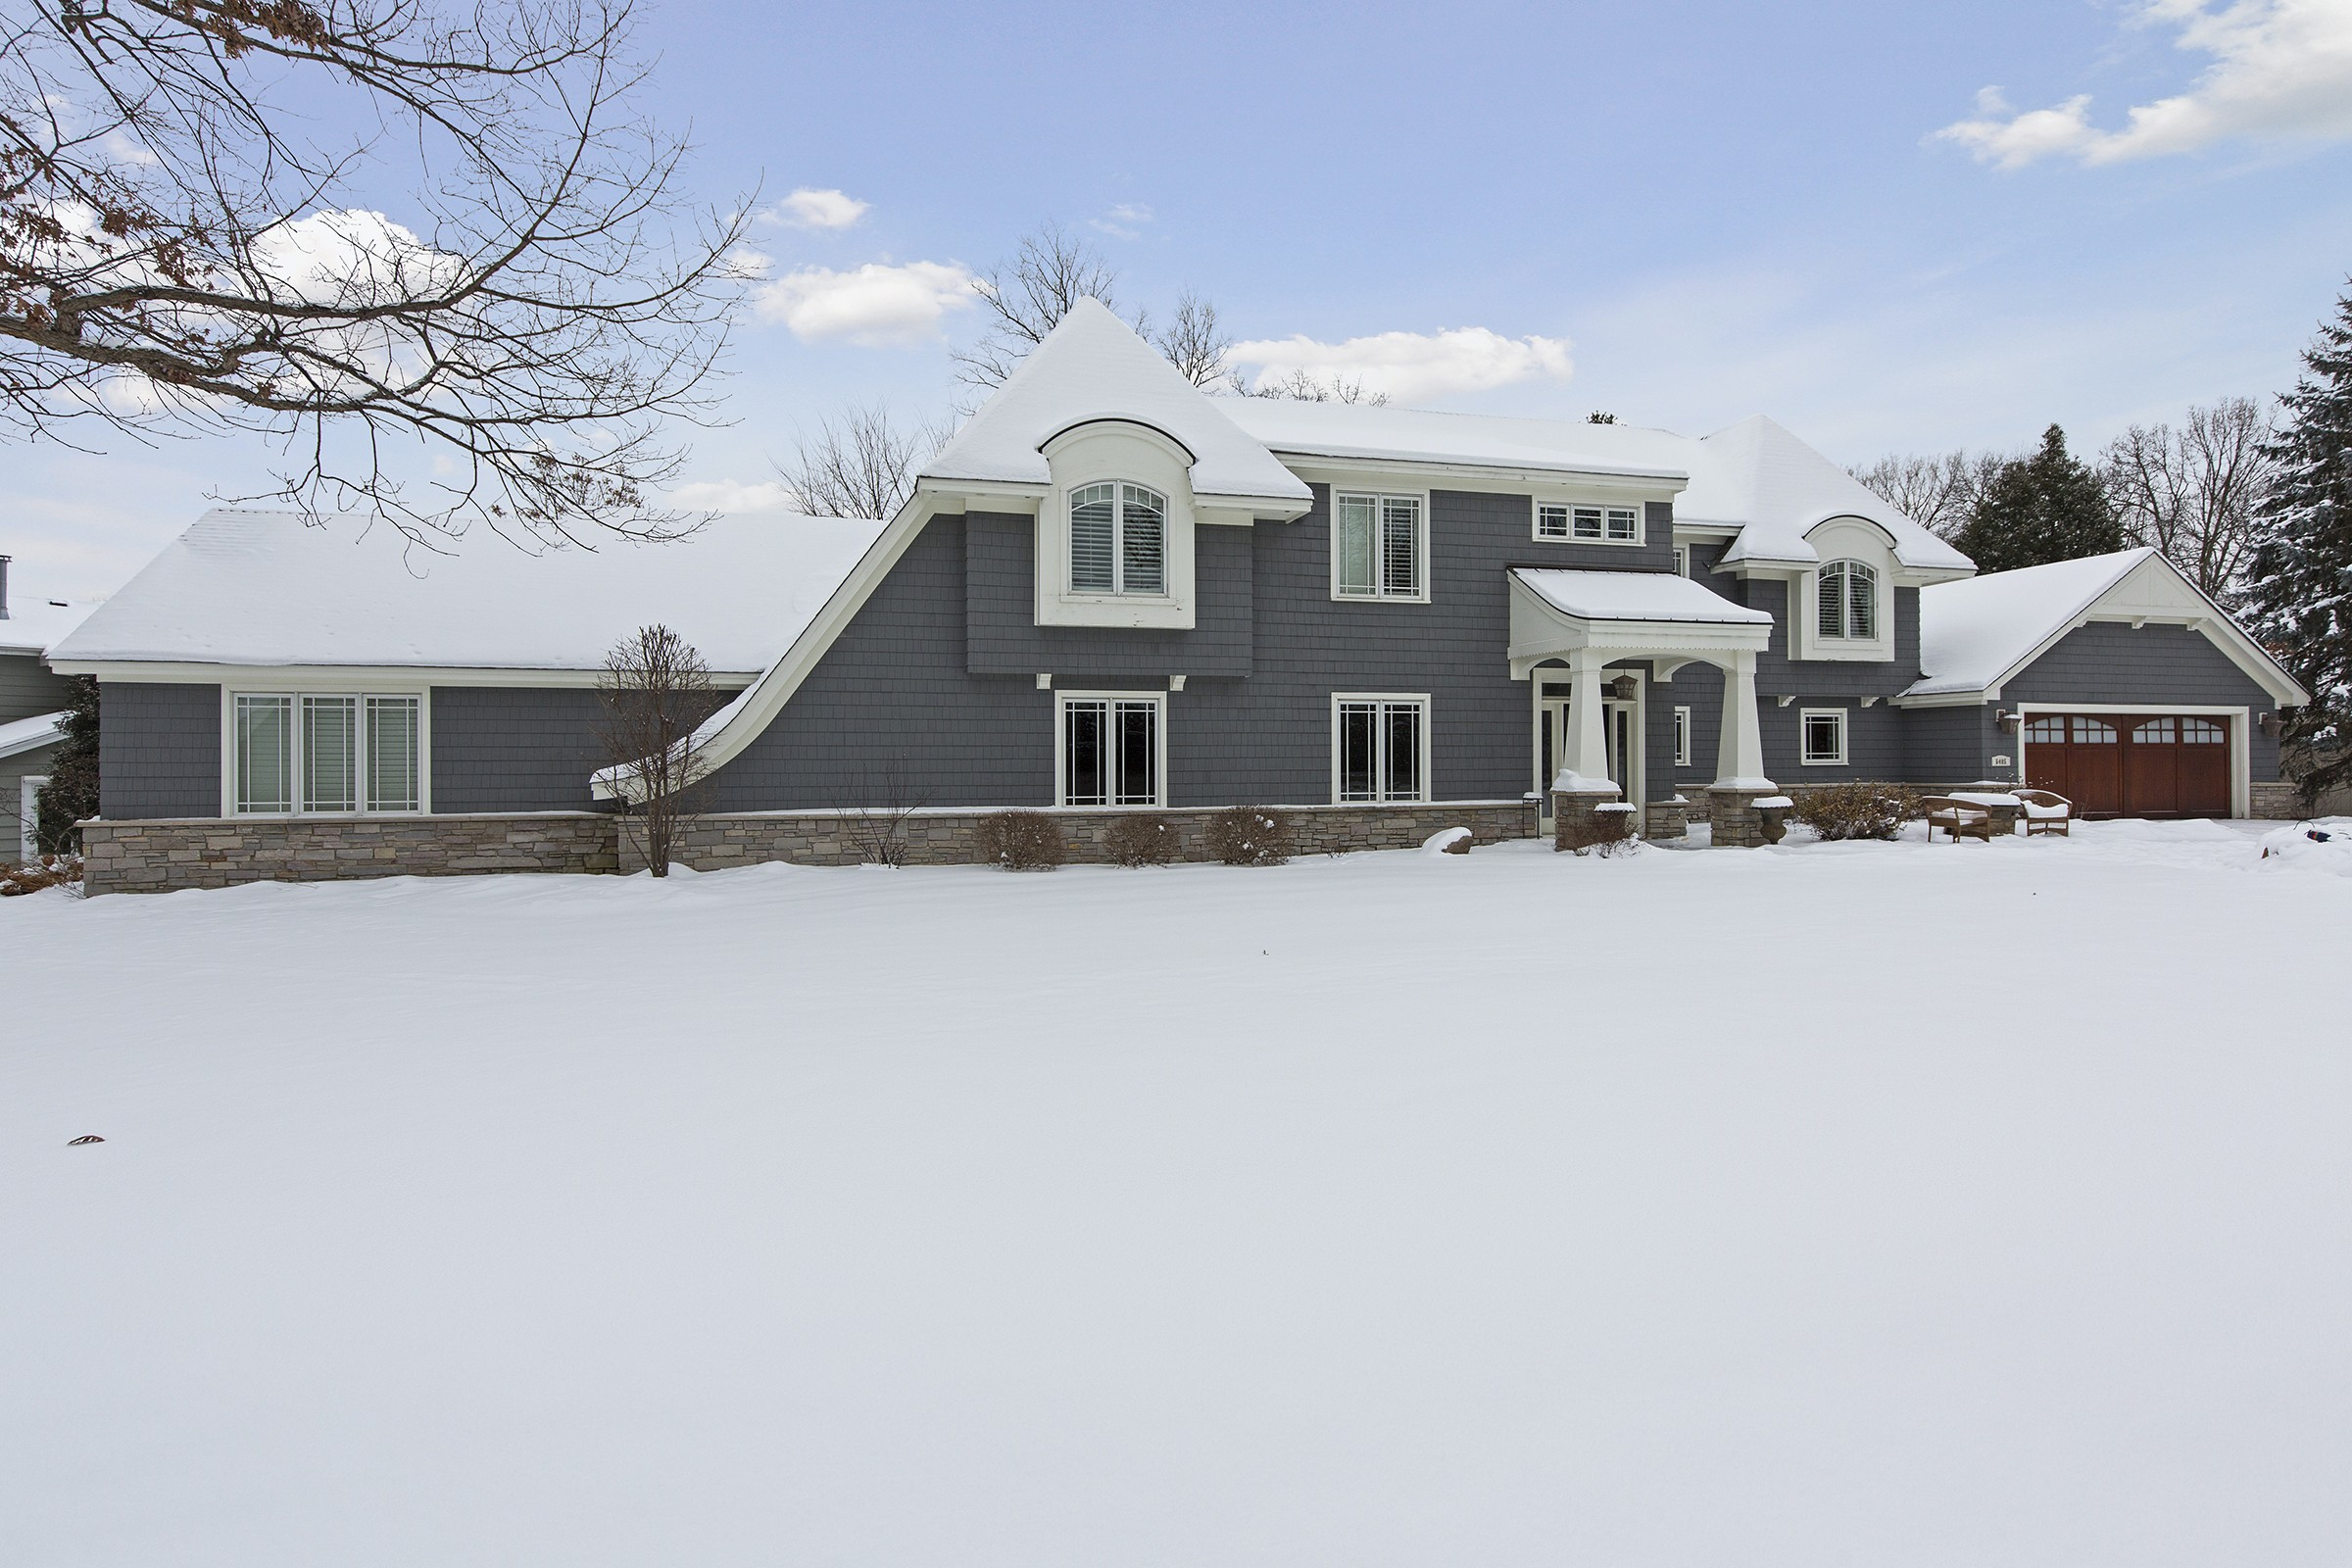 Single Family Home for Sale at 6405 Willow Wood Road Edina, Minnesota, 55436 United States